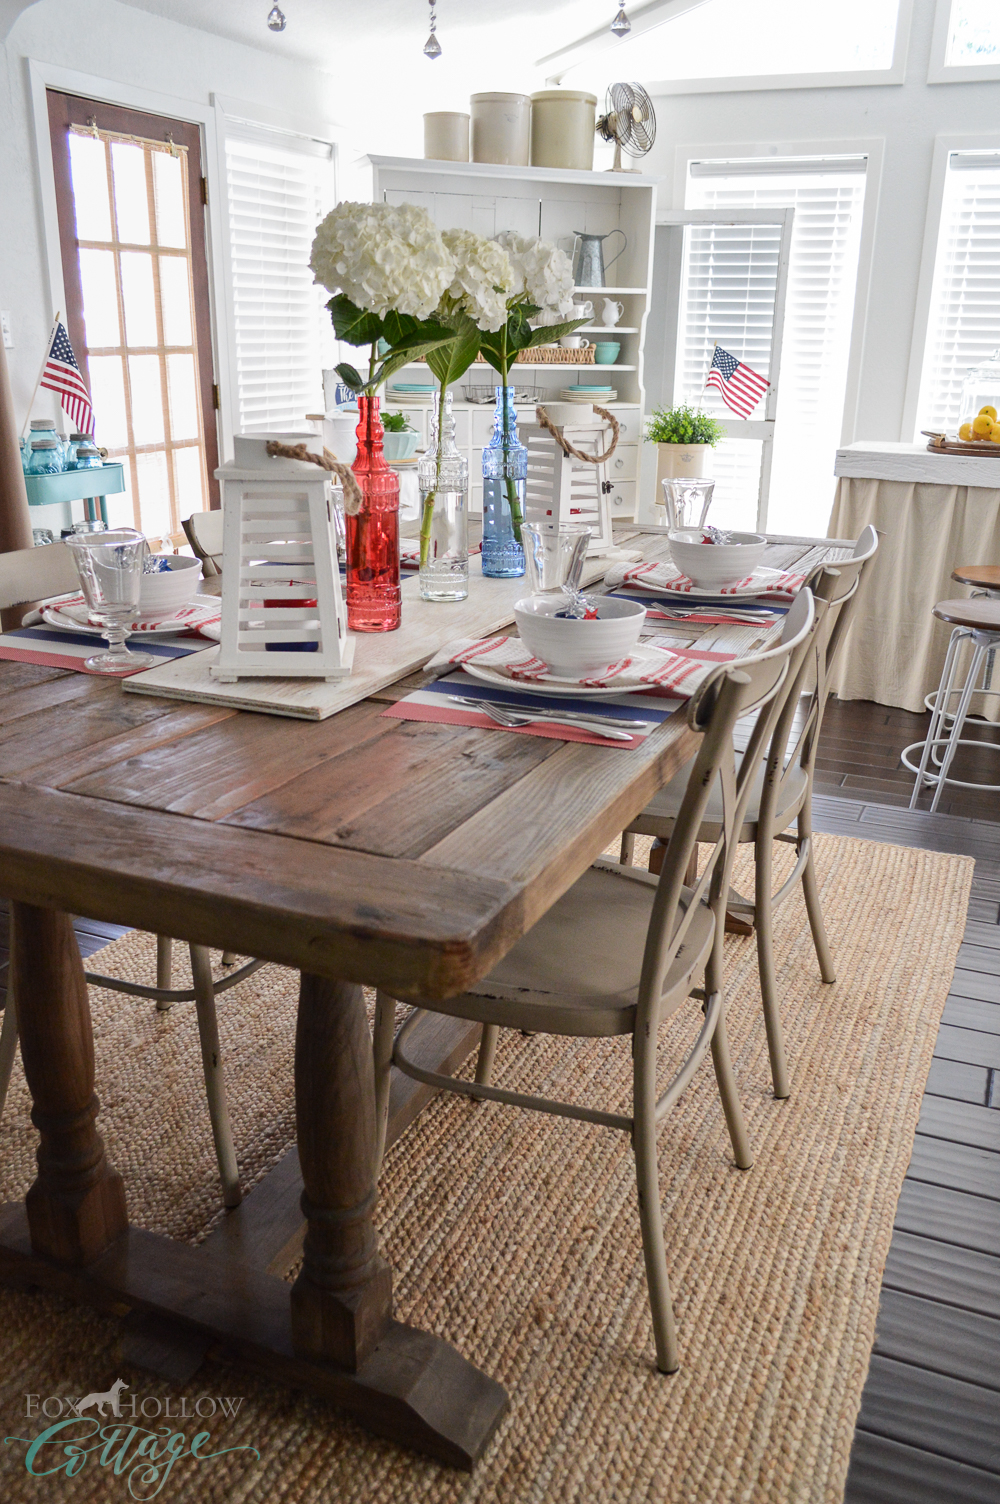 Simple 4th of July Table Decorating Ideas - Fox Hollow Cottage